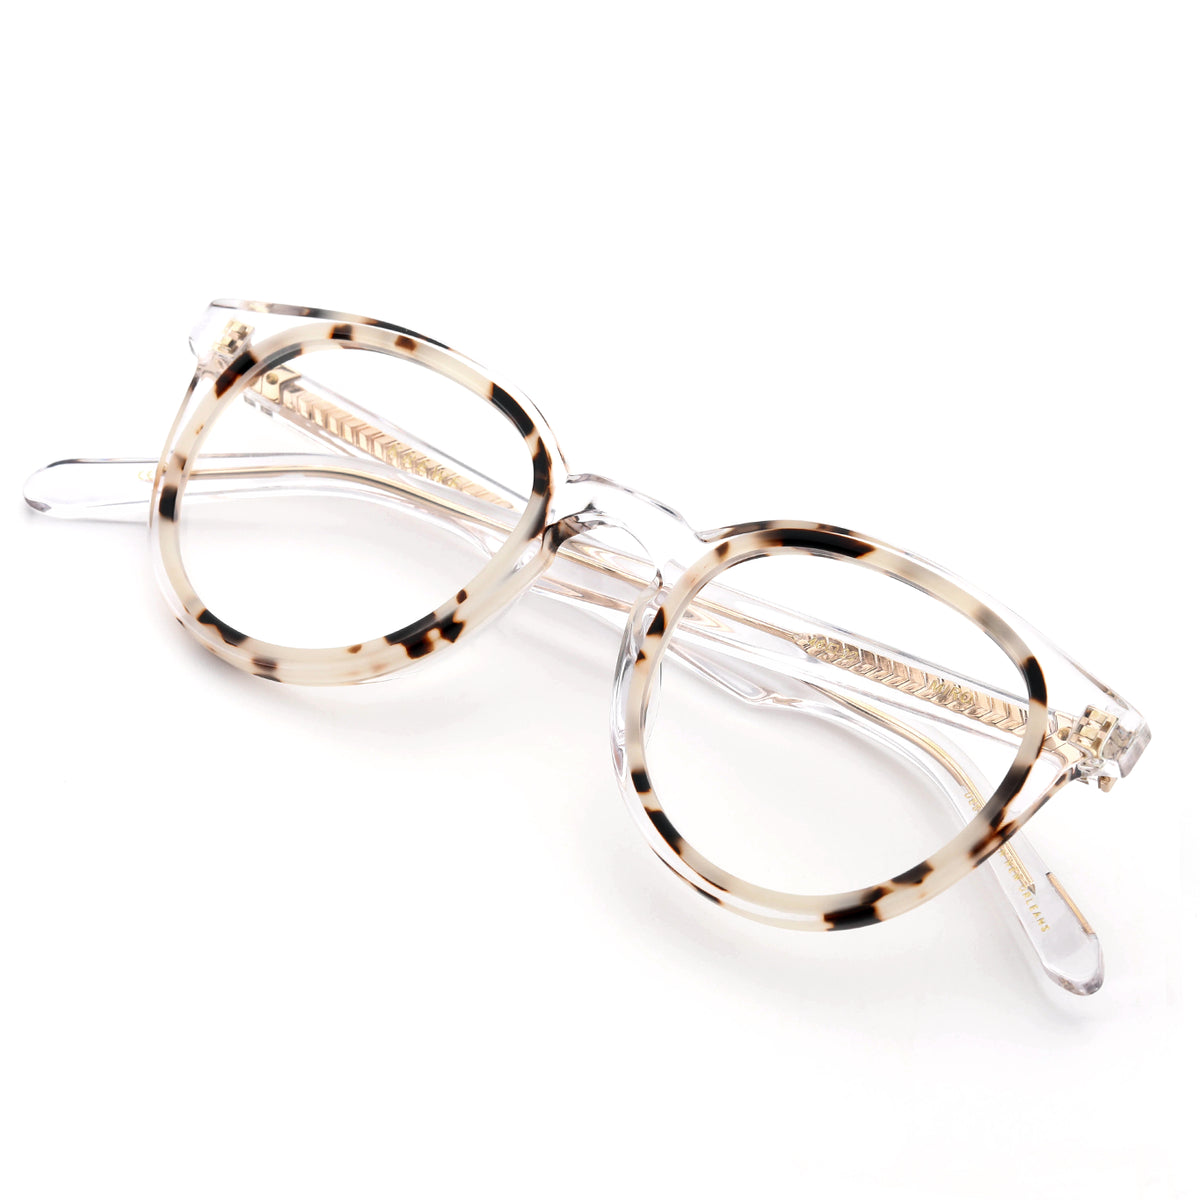 MIRO | Crystal to Oyster - handcrafted acetate eyewear